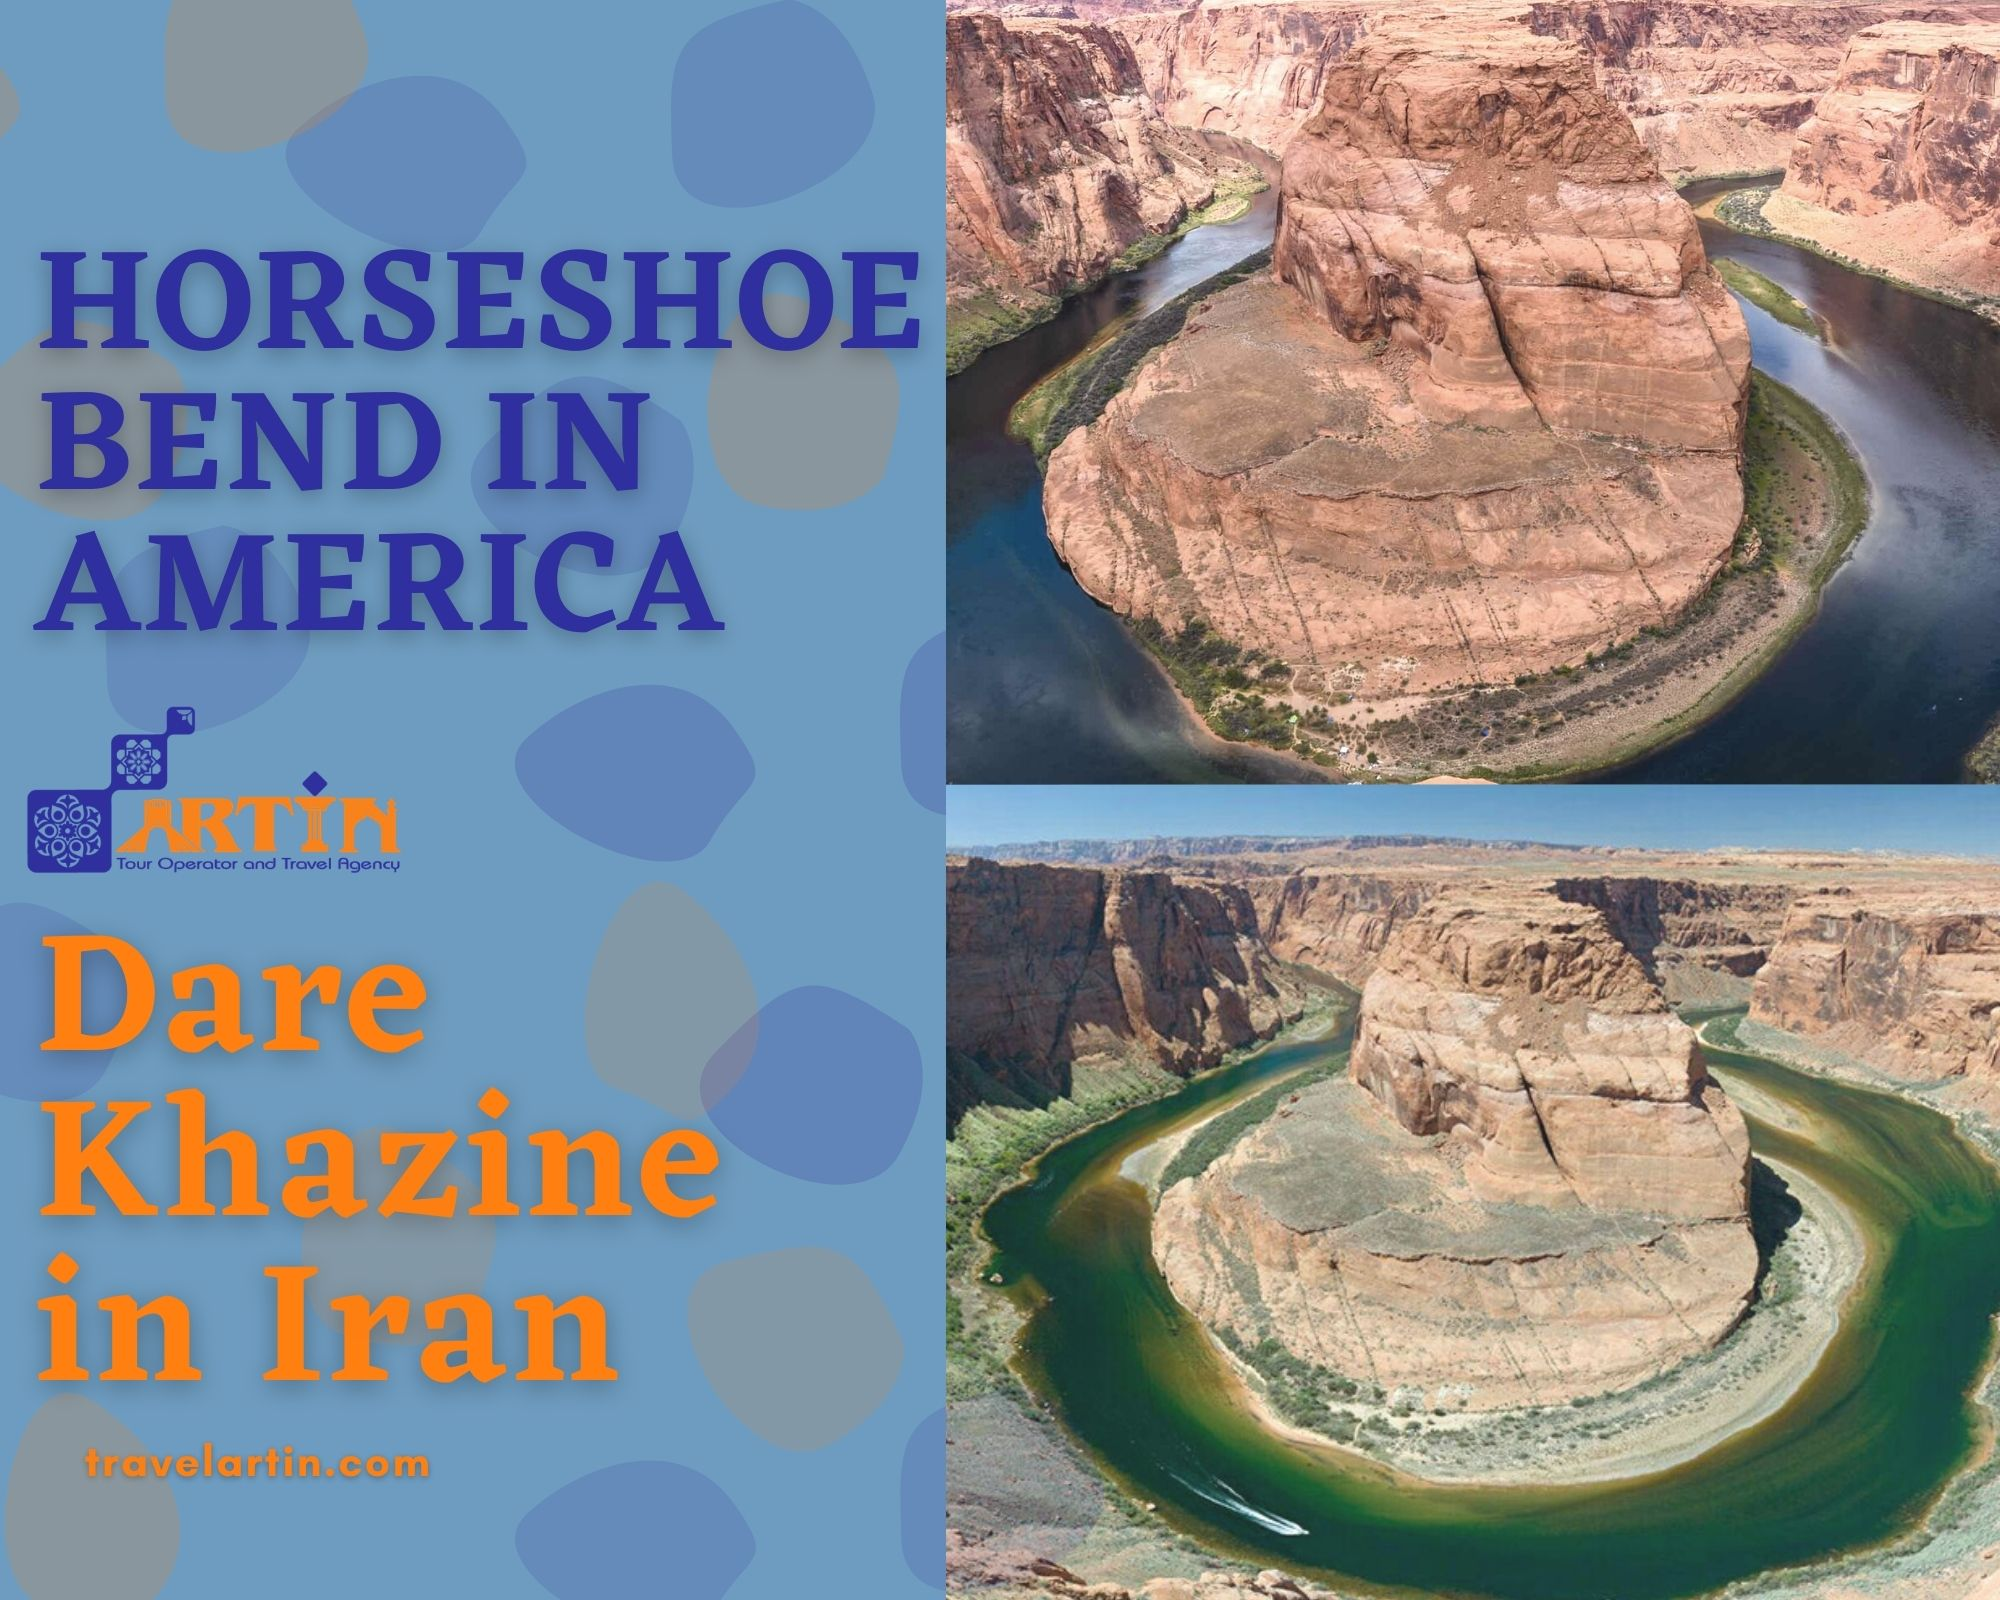 Dare Khazine in Iran tips about travel from america